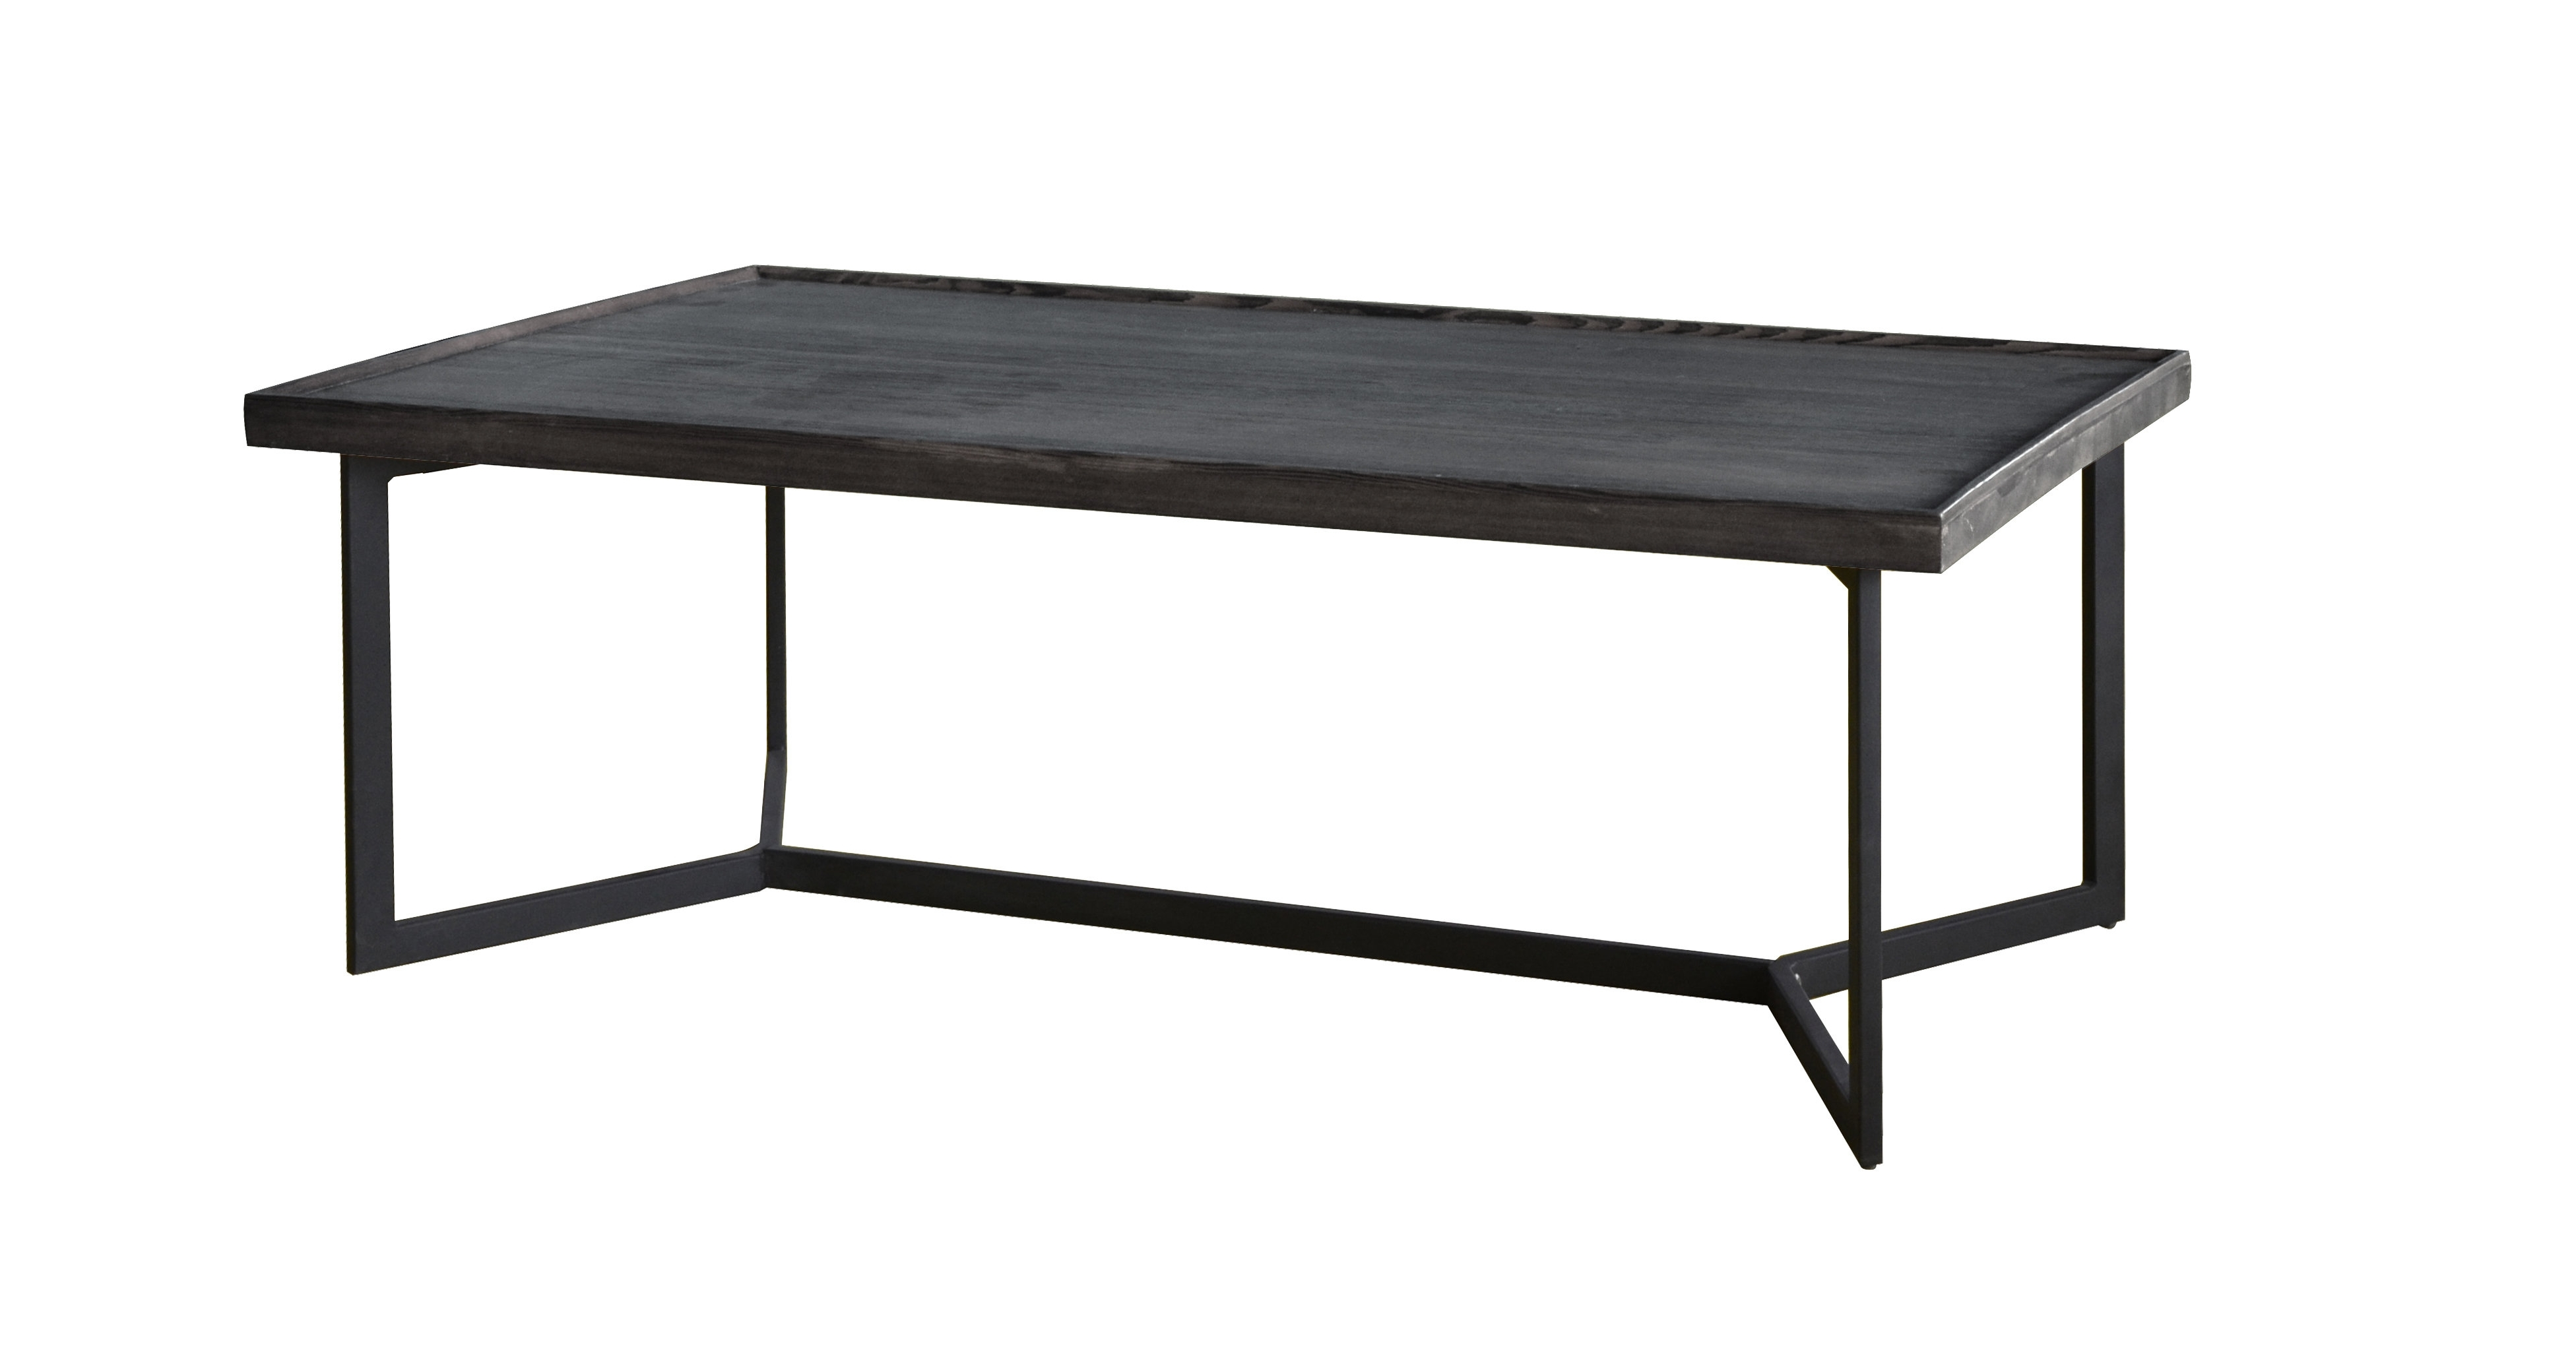 Madison Home Usa Modern Rustic Coffee Table & Reviews | Wayfair throughout Modern Rustic Coffee Tables (Image 10 of 30)